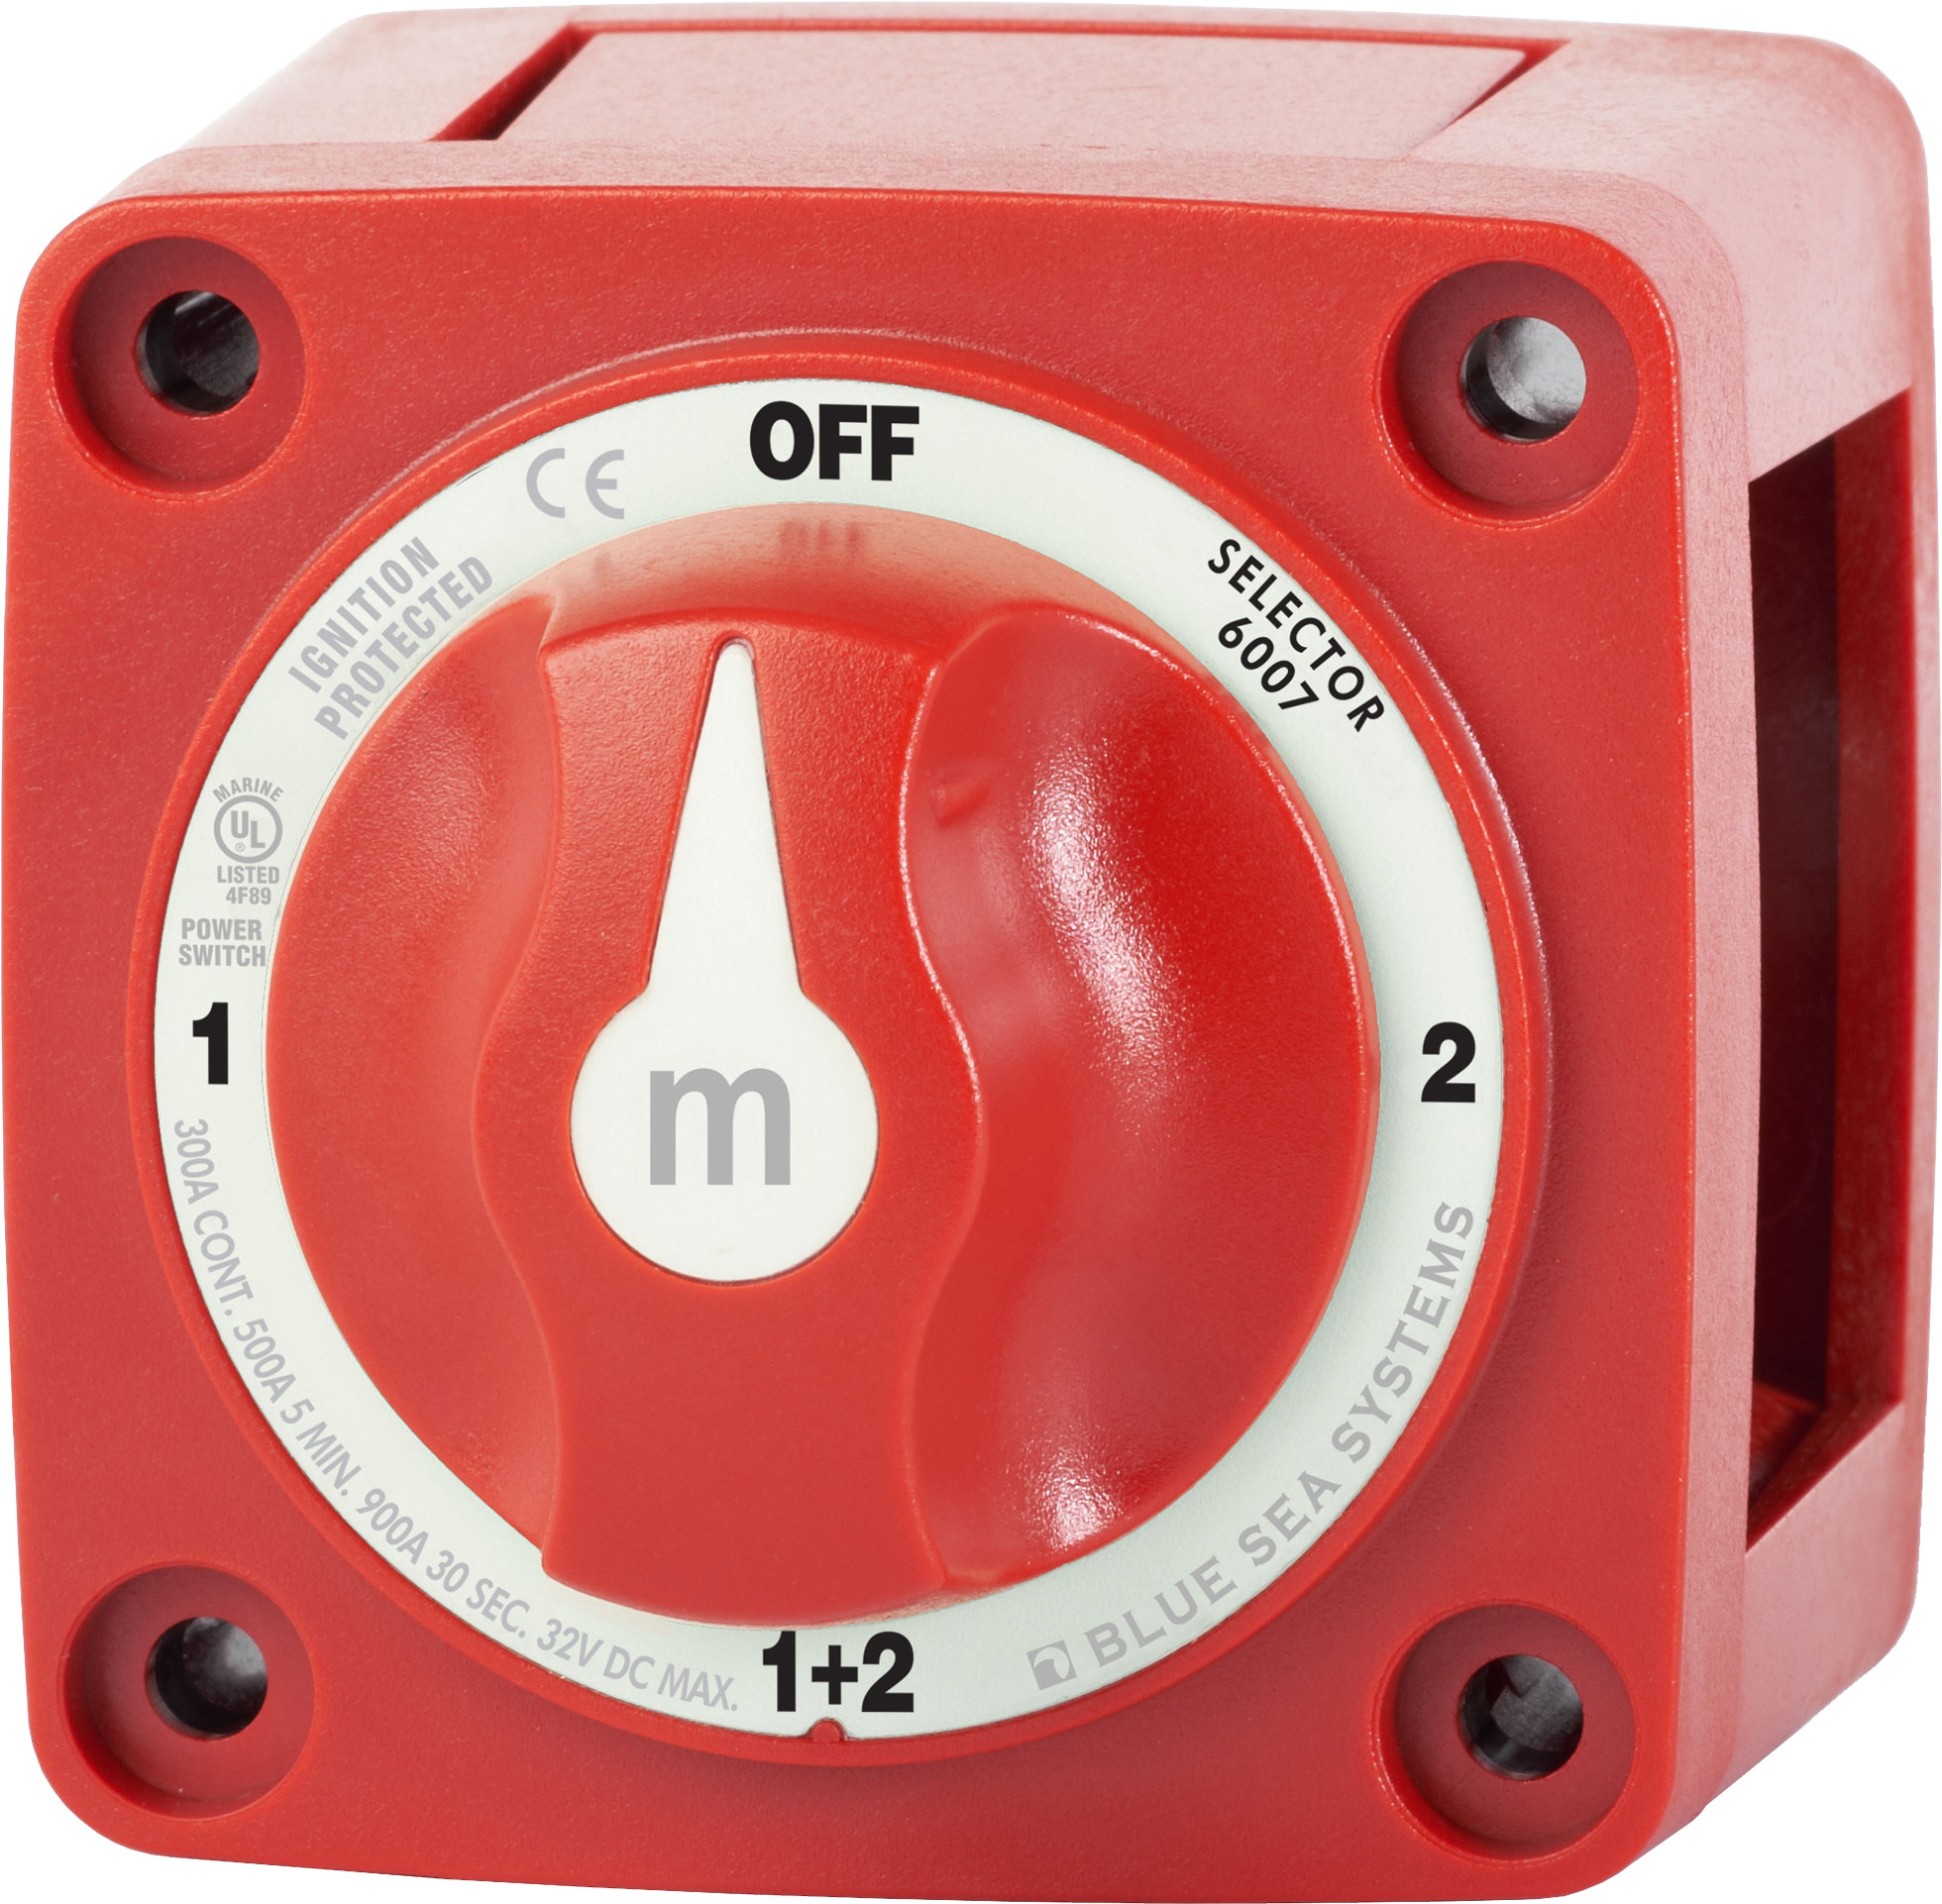 mSeries Mini Selector Battery Switch  Red  Blue Sea Systems